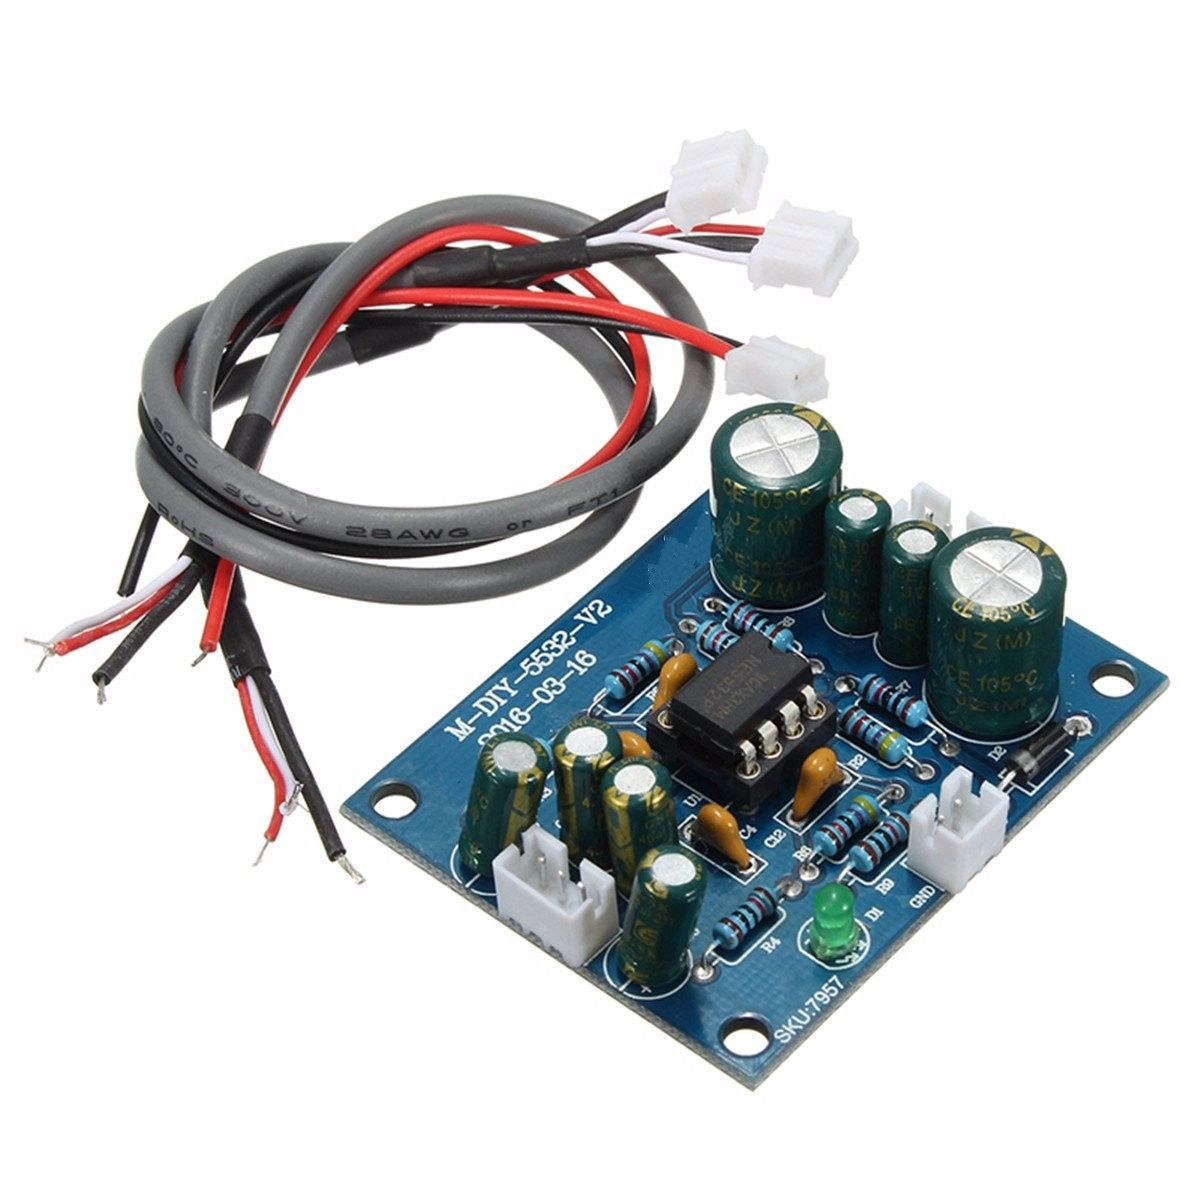 Ne5532 Op Amp Hifi Preamplifier Signal Amplifier Board For Bluetooth Wiring Pre Features 1 Two Panel Design The Effect Is Even Better 2